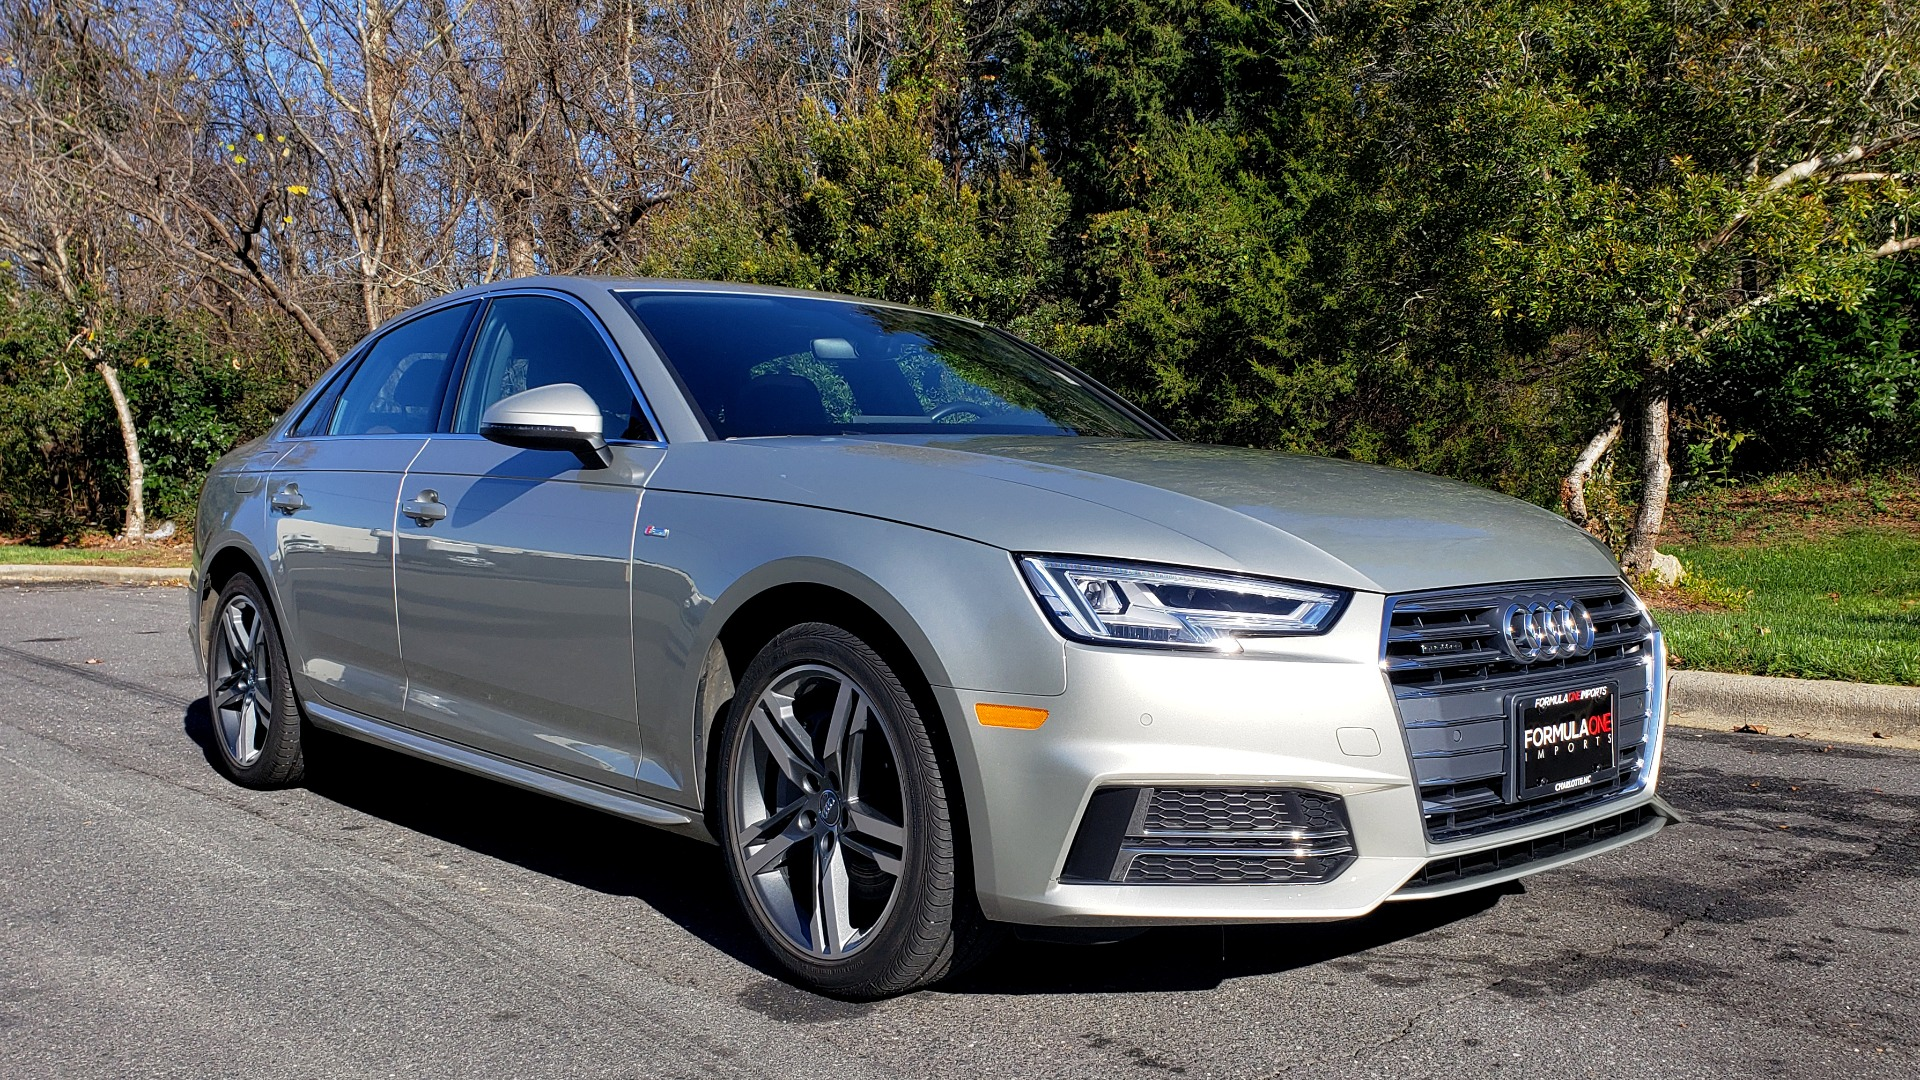 Used 2017 Audi A4 PREMIUM PLUS / TECH PKG / B&O SND / S-LINE / NAV / REARVIEW for sale $24,995 at Formula Imports in Charlotte NC 28227 7